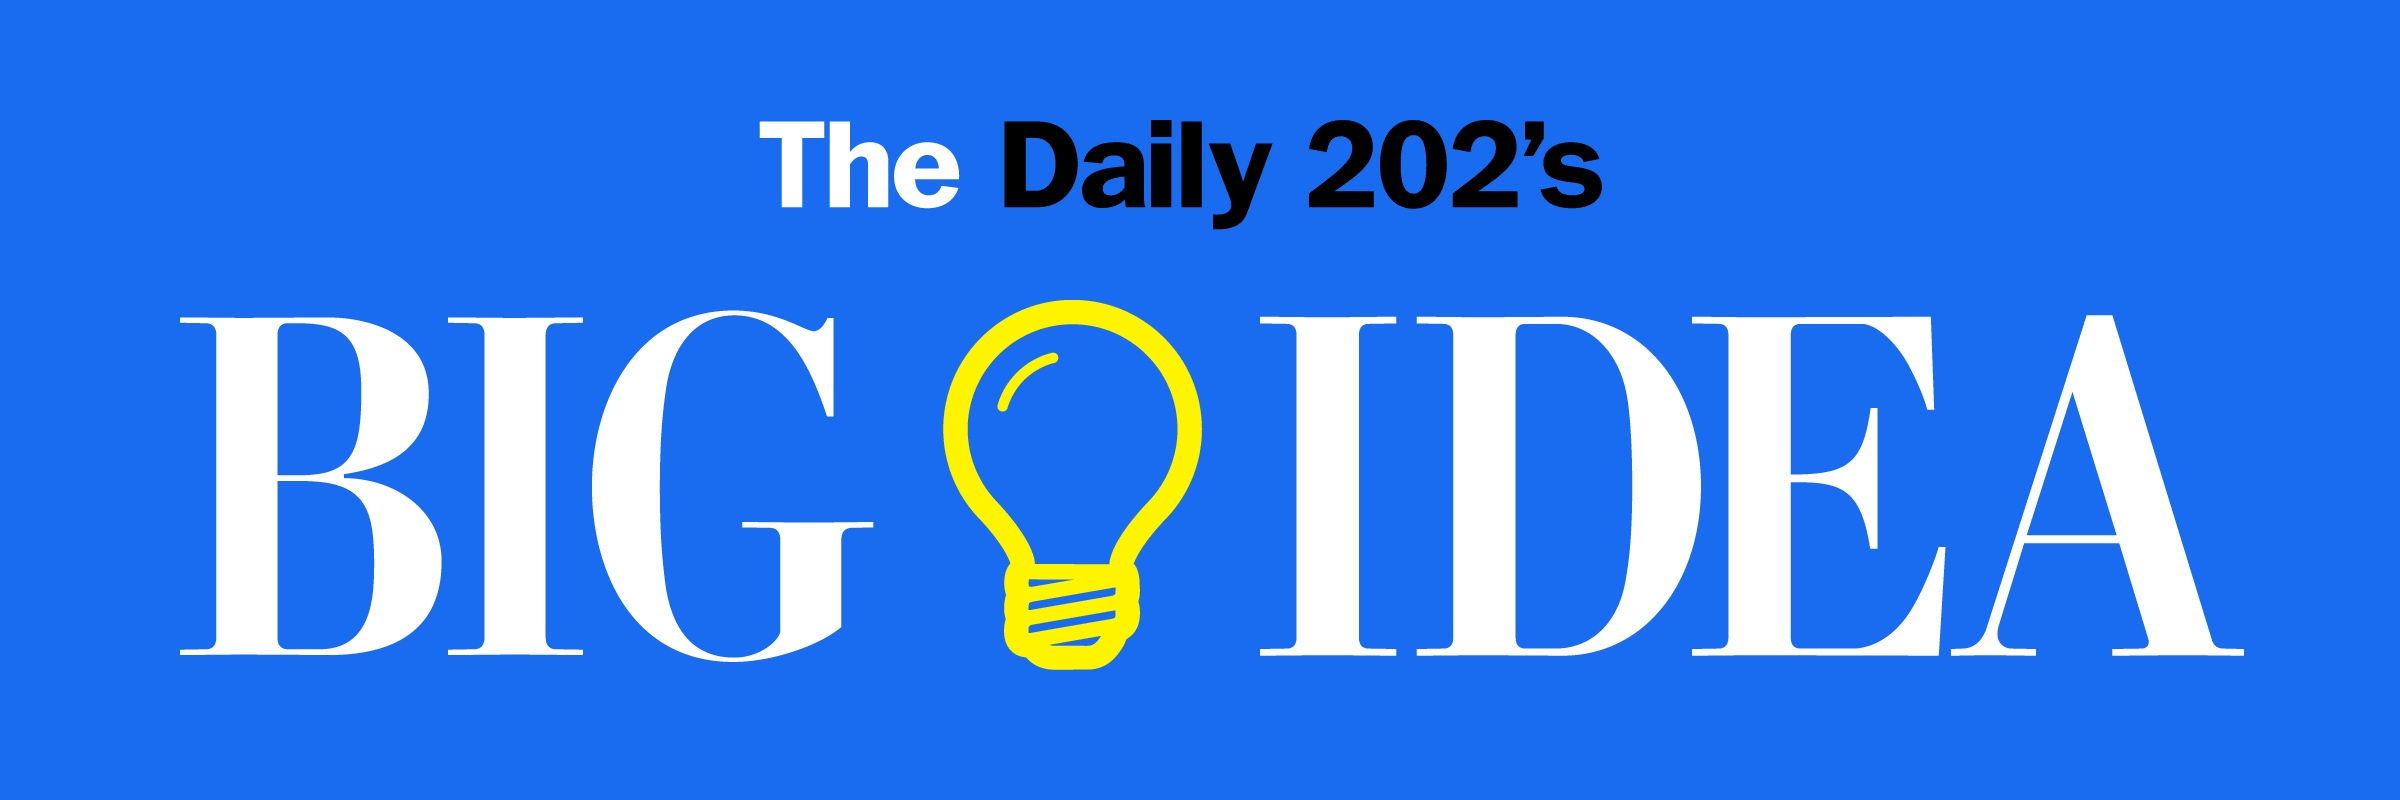 The Daily 202's Big Idea Series Cover Image